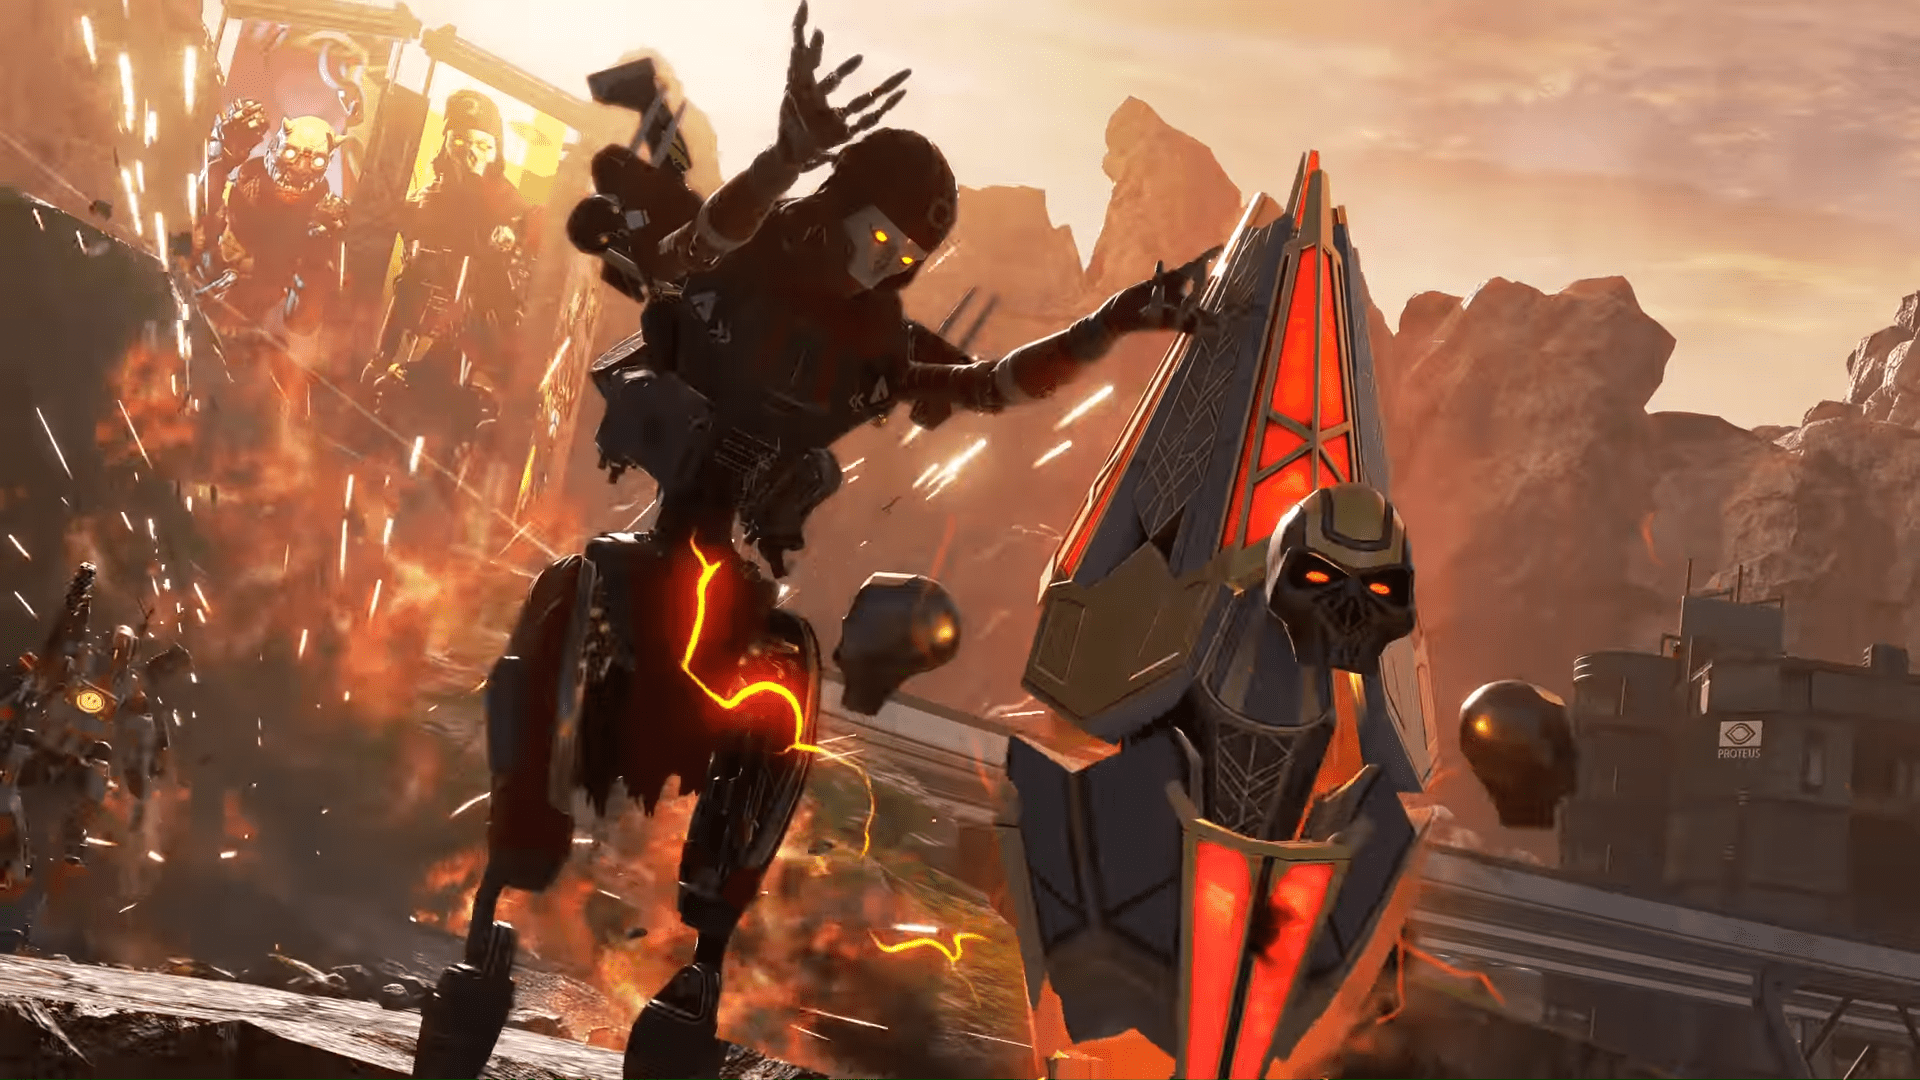 One Day In, Is Apex Legends Season 4 Any Good? A Quick Look At Revenant, World's Edge Map Additions, And Major Weapon Changes